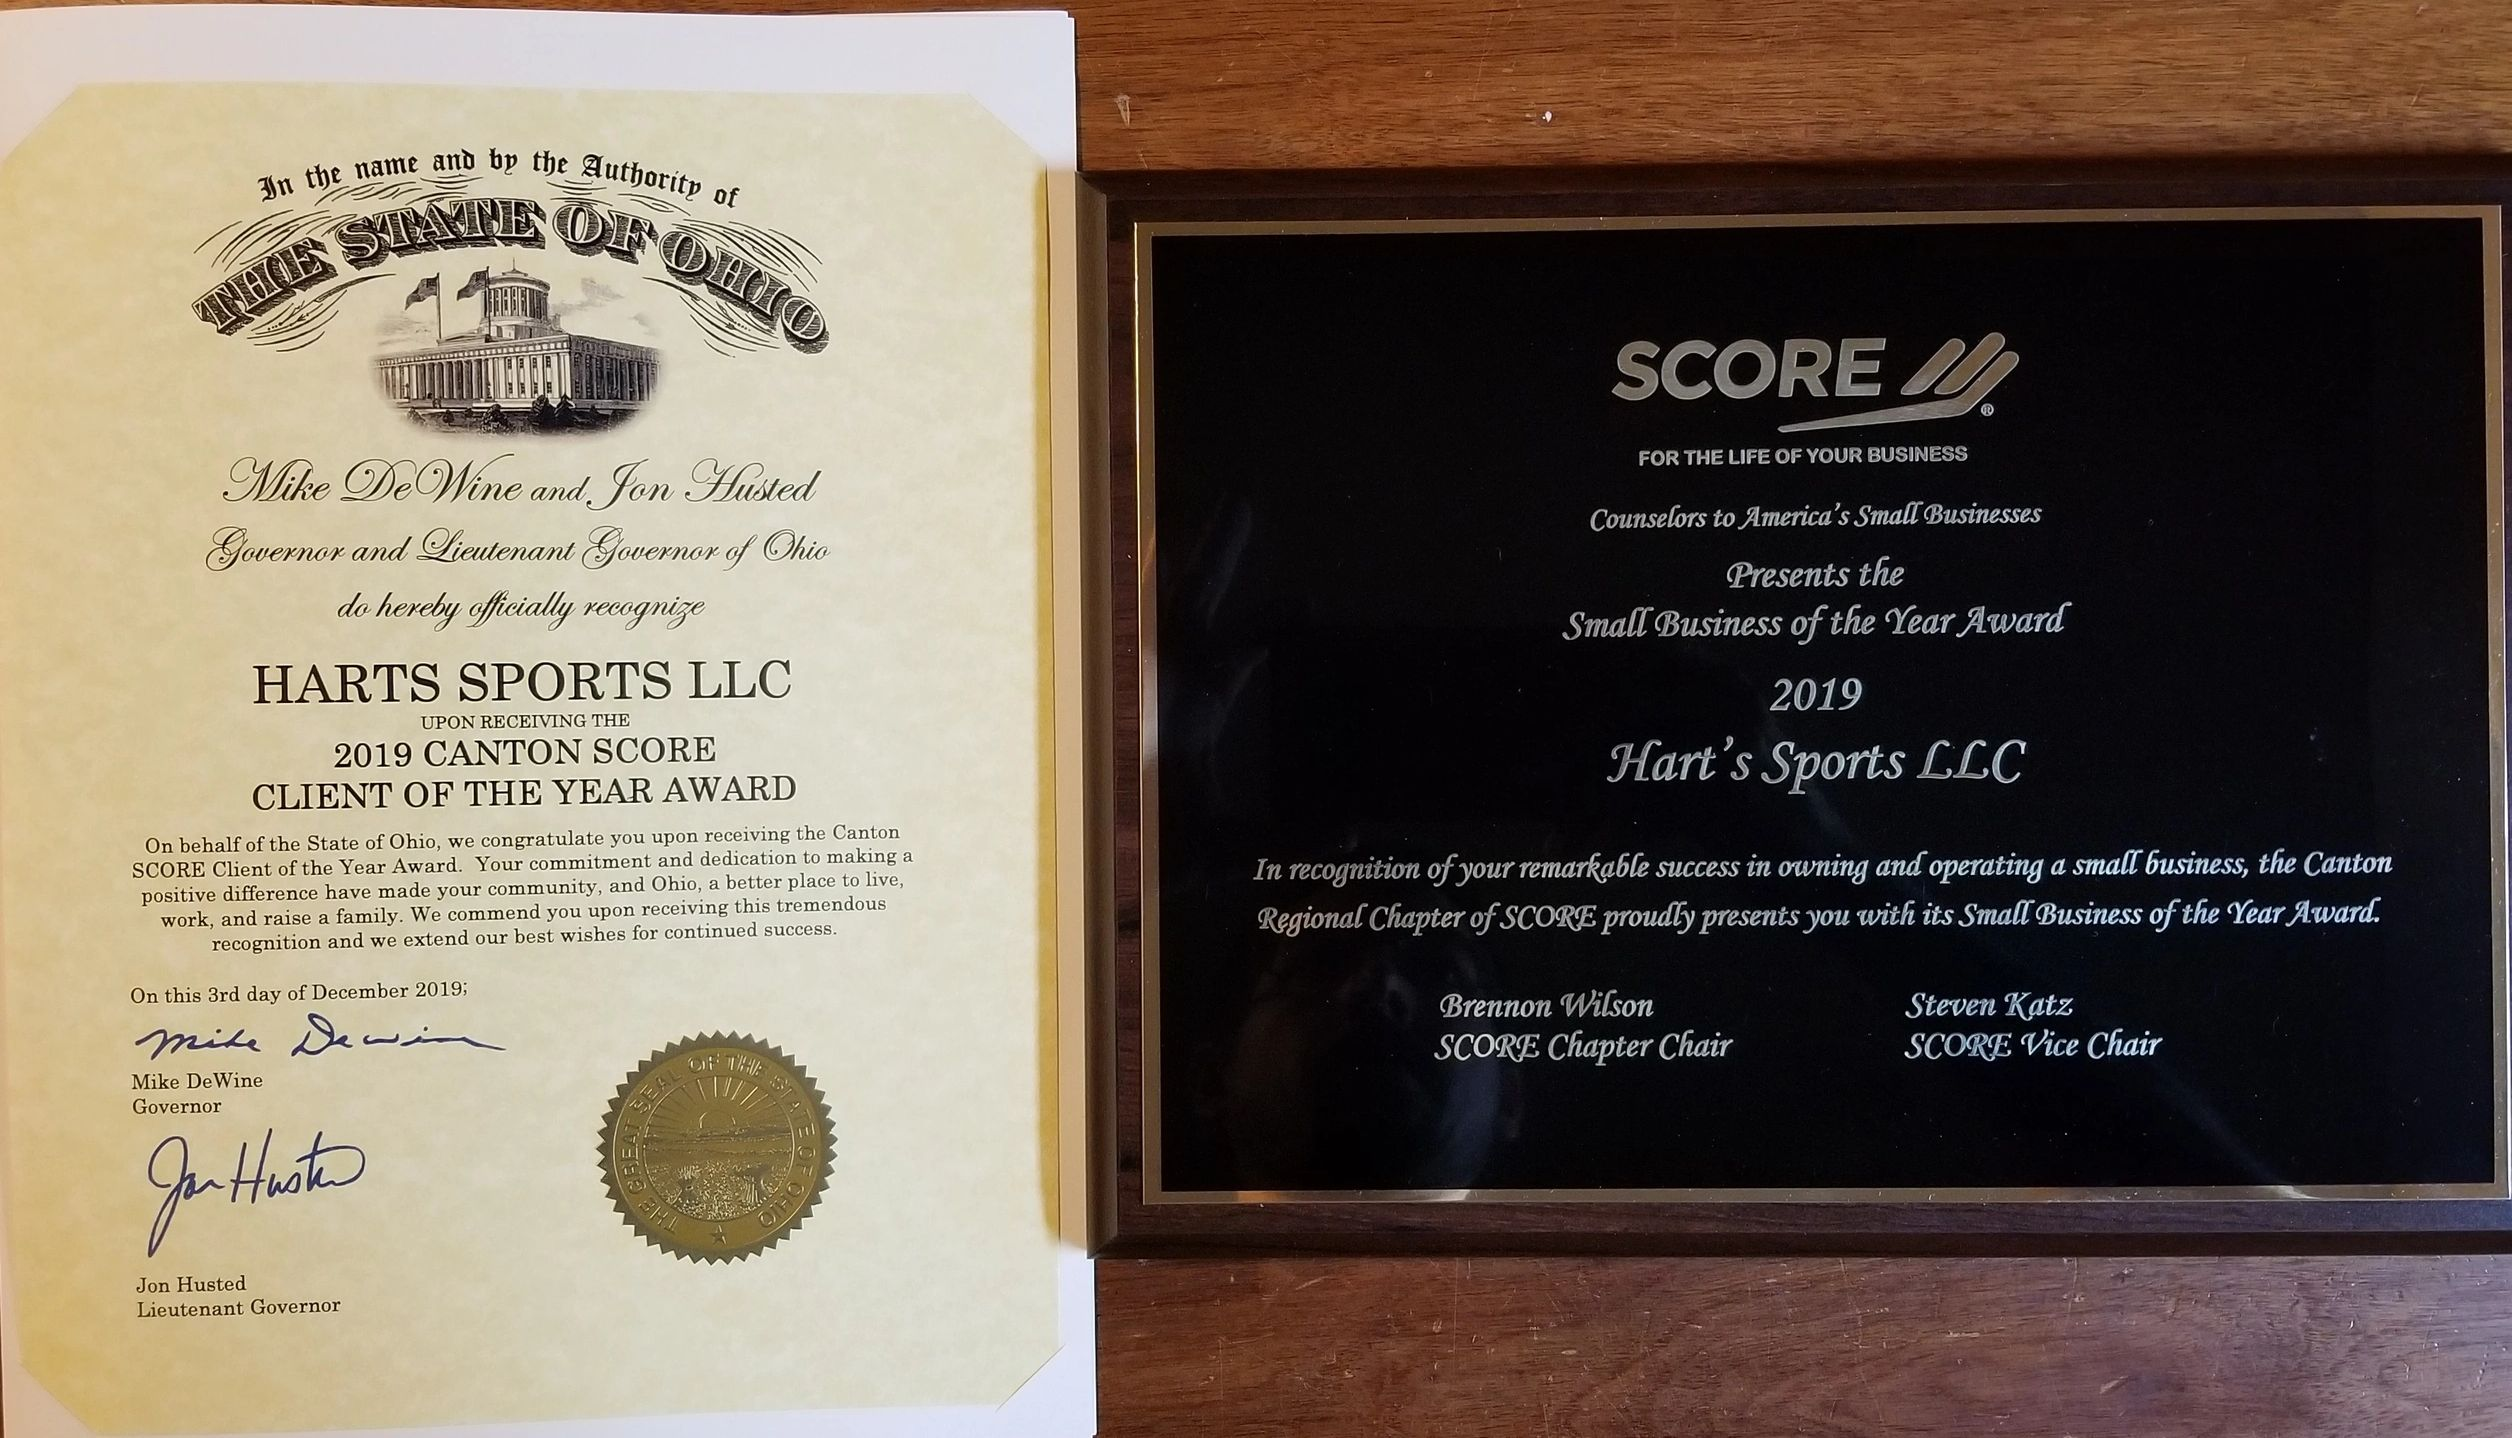 SCORE Small business of the year harts sports winner of 2019 small business